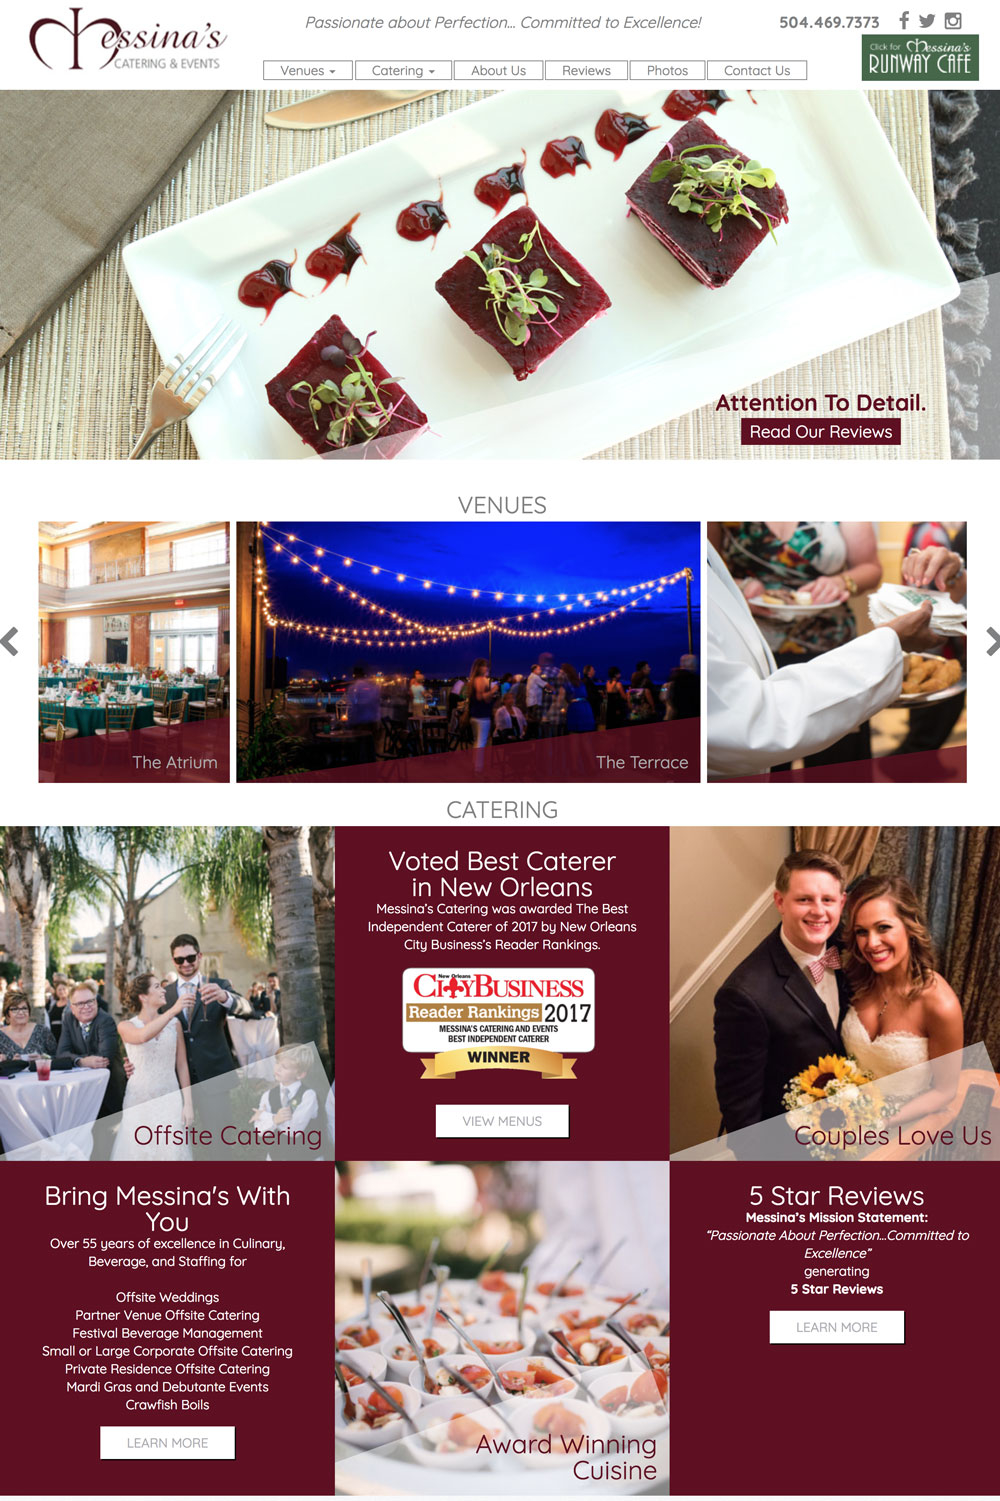 messinas new orleans website design